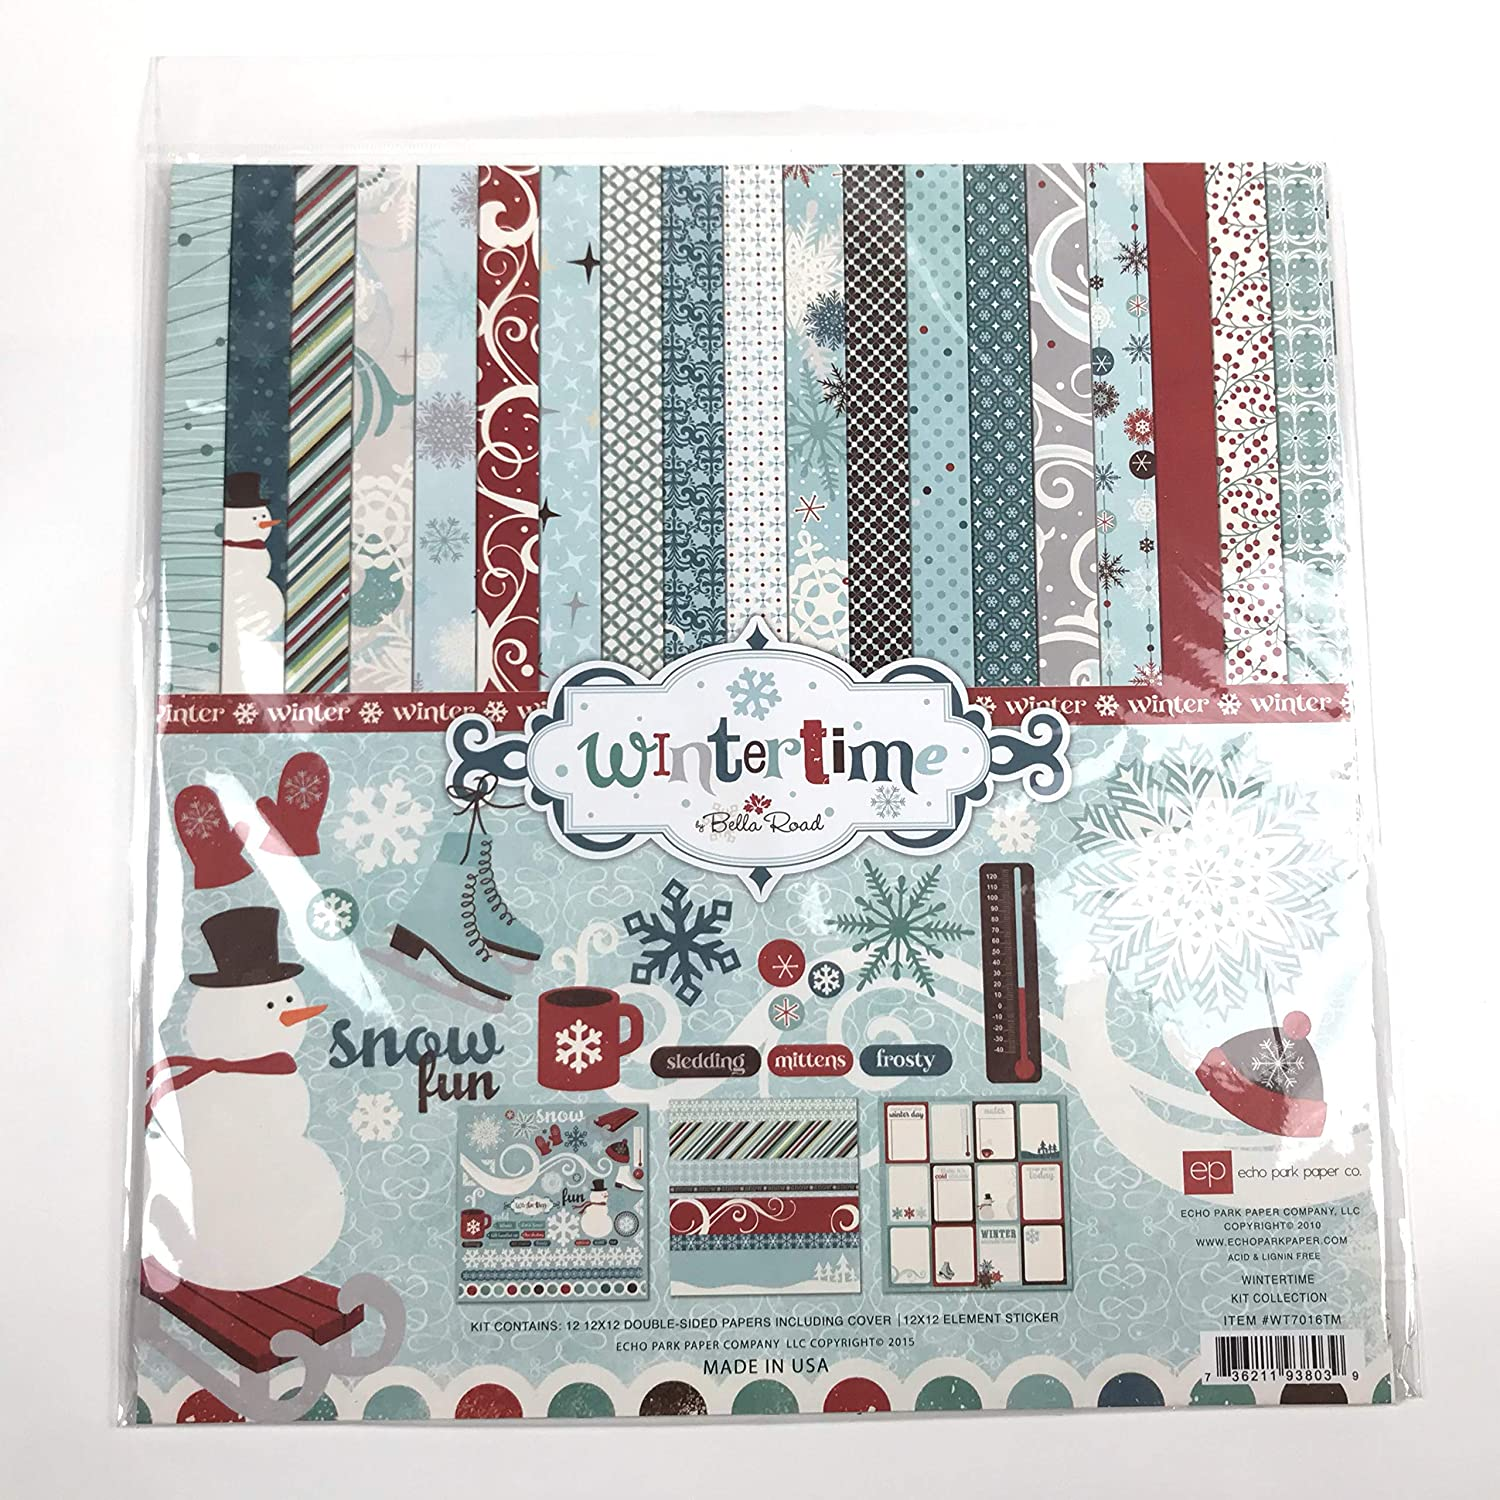 Wintertime Collection Scrapbooking Kit by Bella Road WT7016TM Echo Park Item #